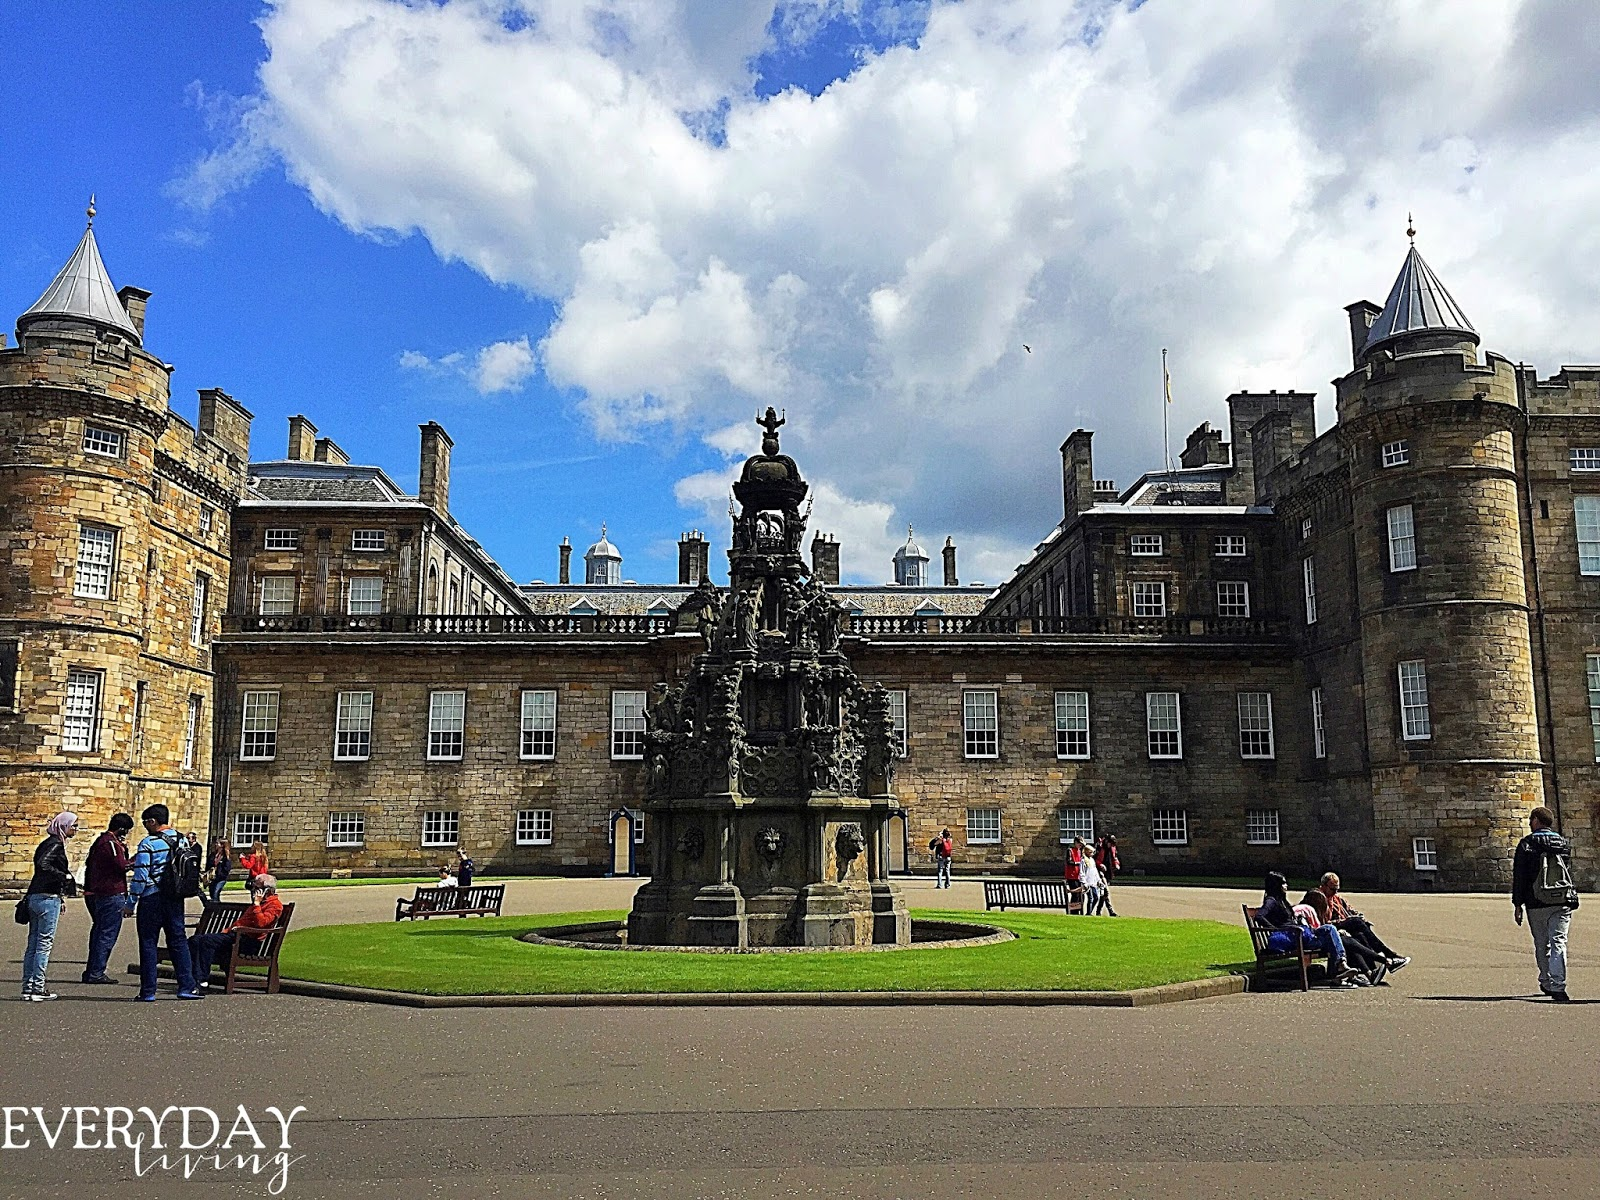 Exploring Edinburgh - Everyday Living Blog